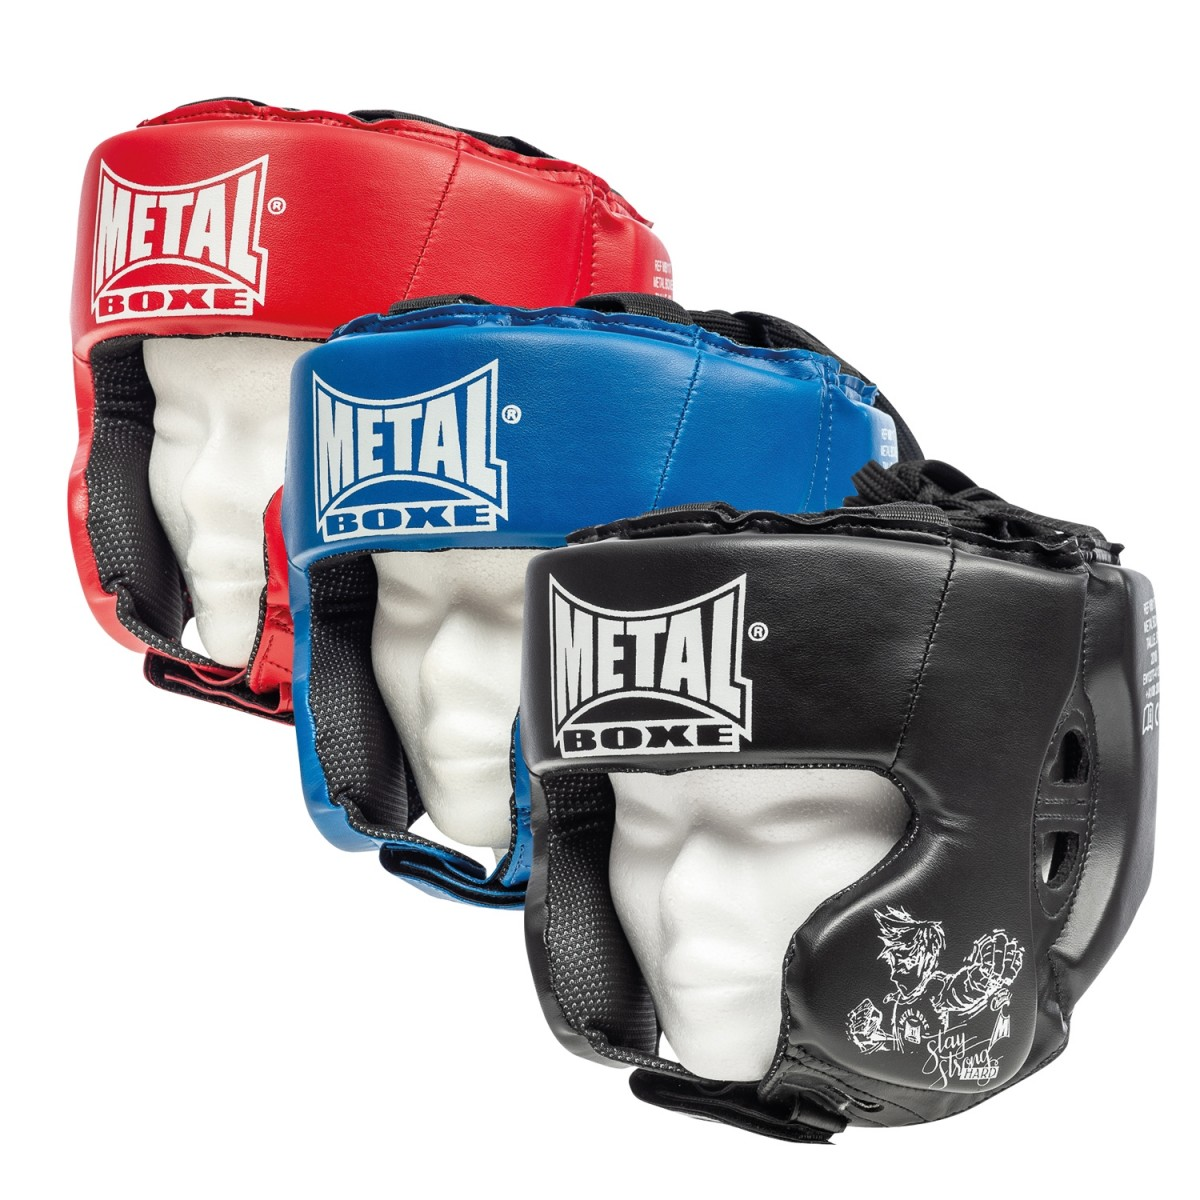 casque_de_boxe_metal_boxe_mb117